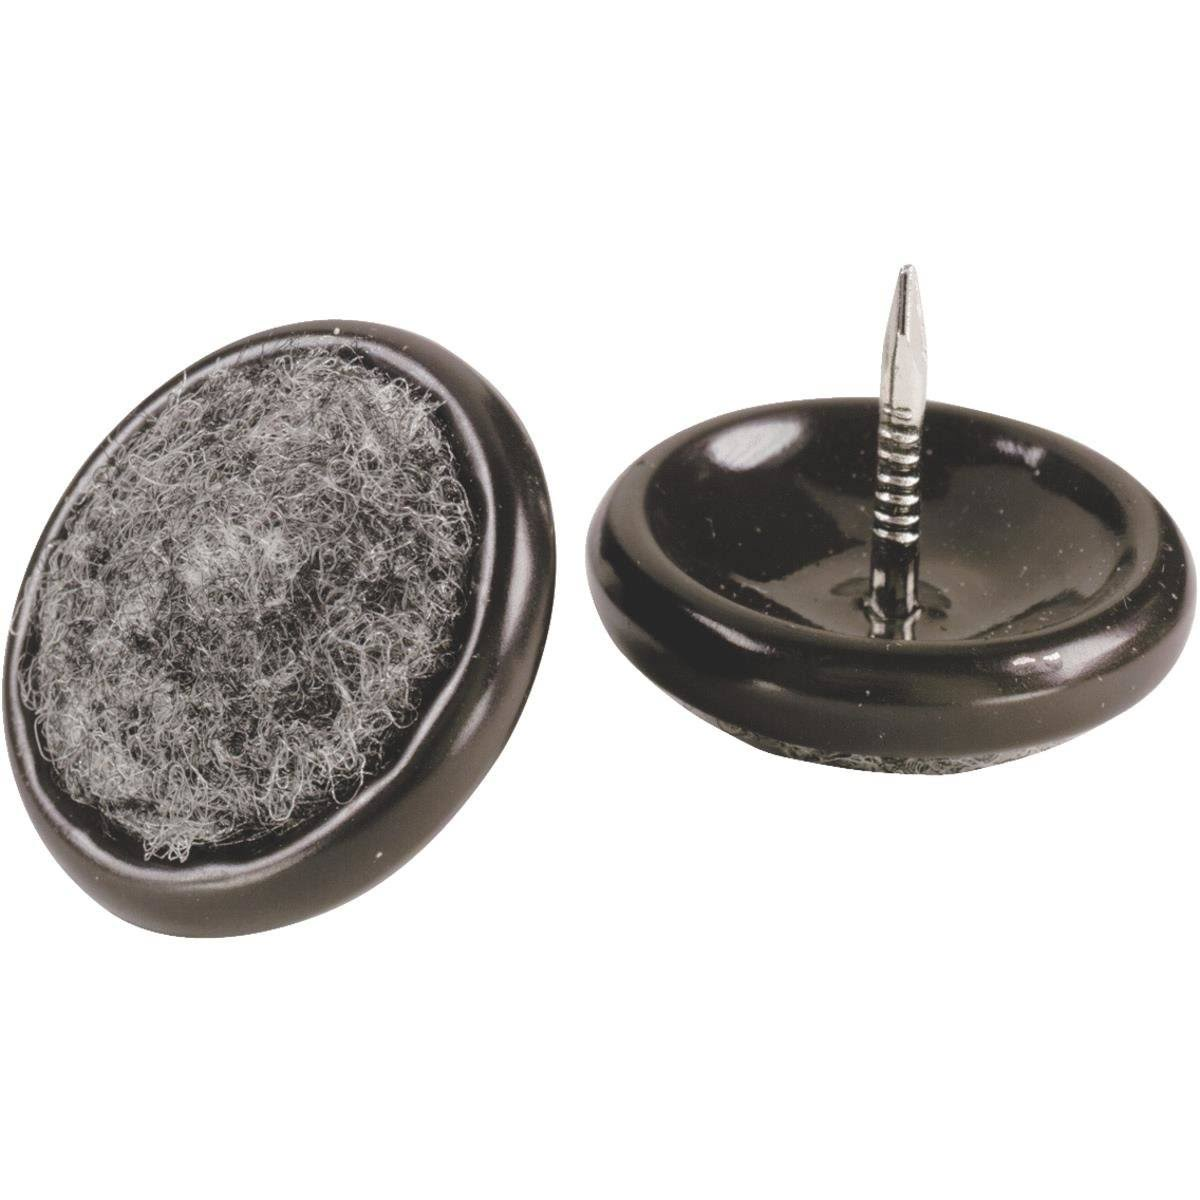 Do It Nail-On Carpet Base Glide - 210129